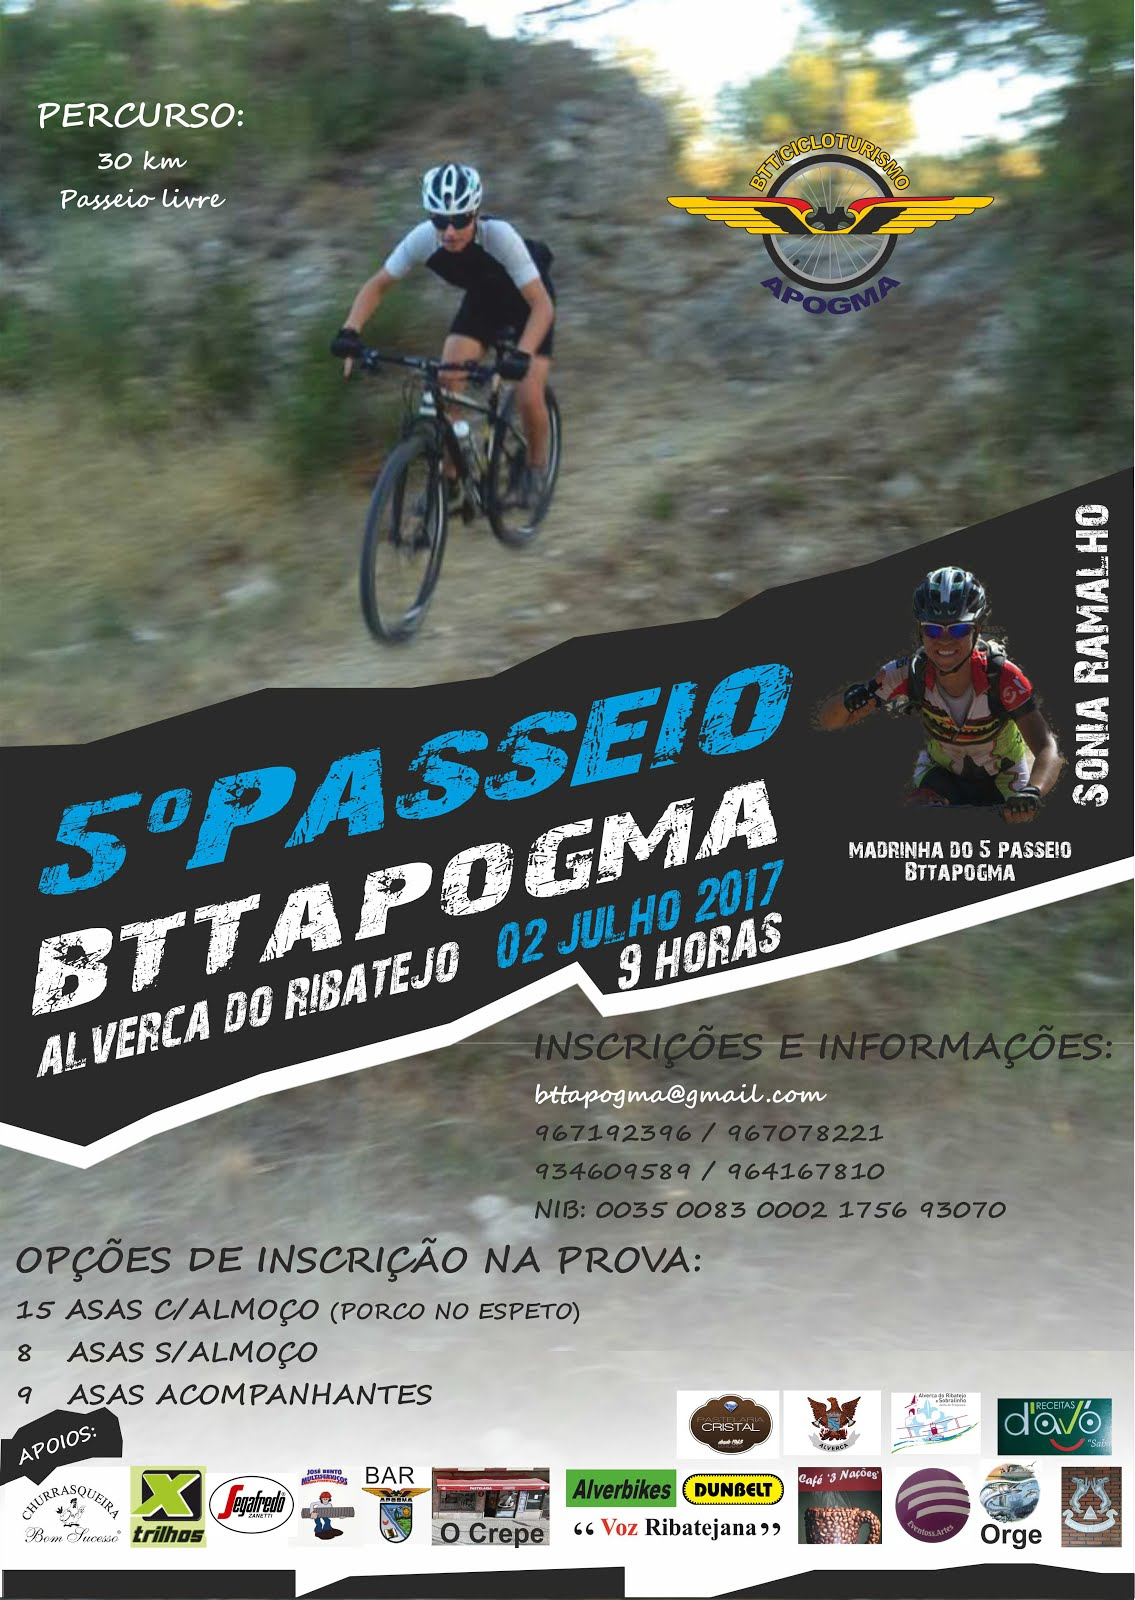 02JUL * ALVERCA DO RIBATEJO